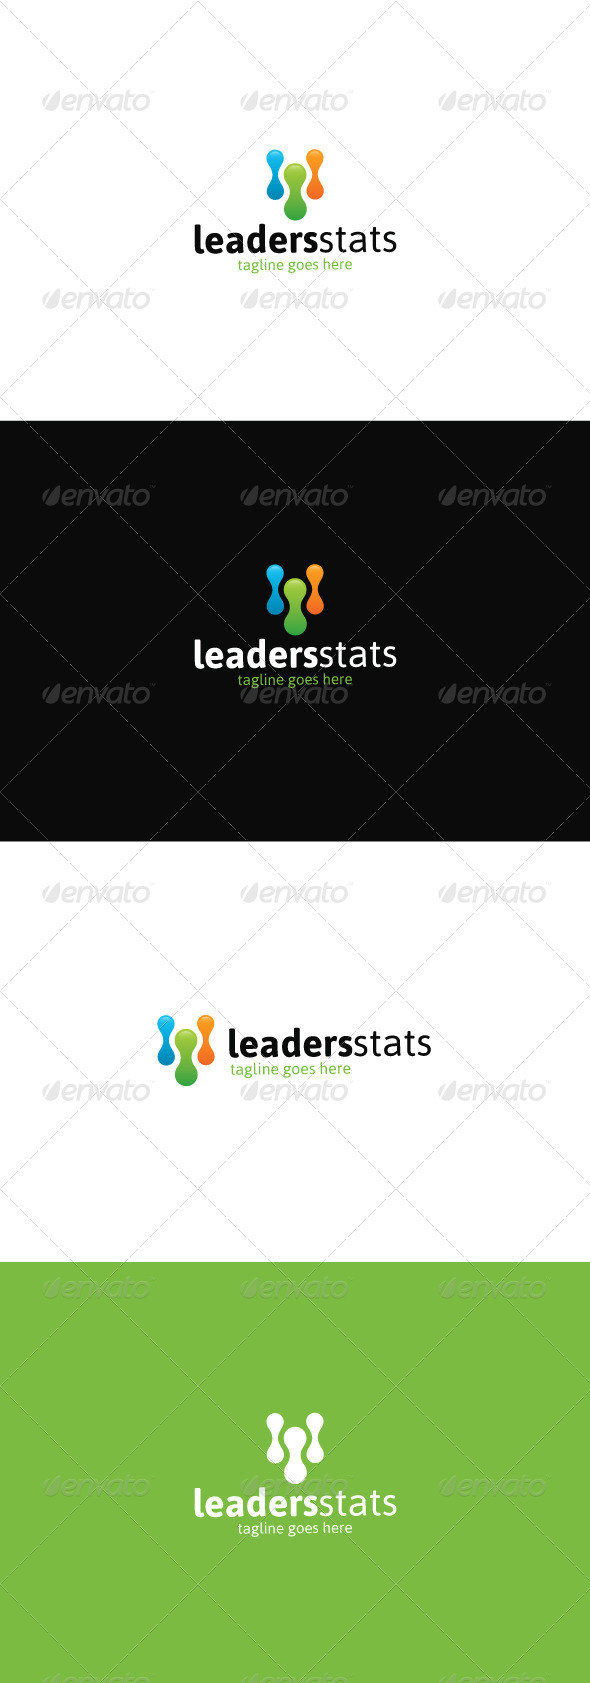 Leaders Stats Logo